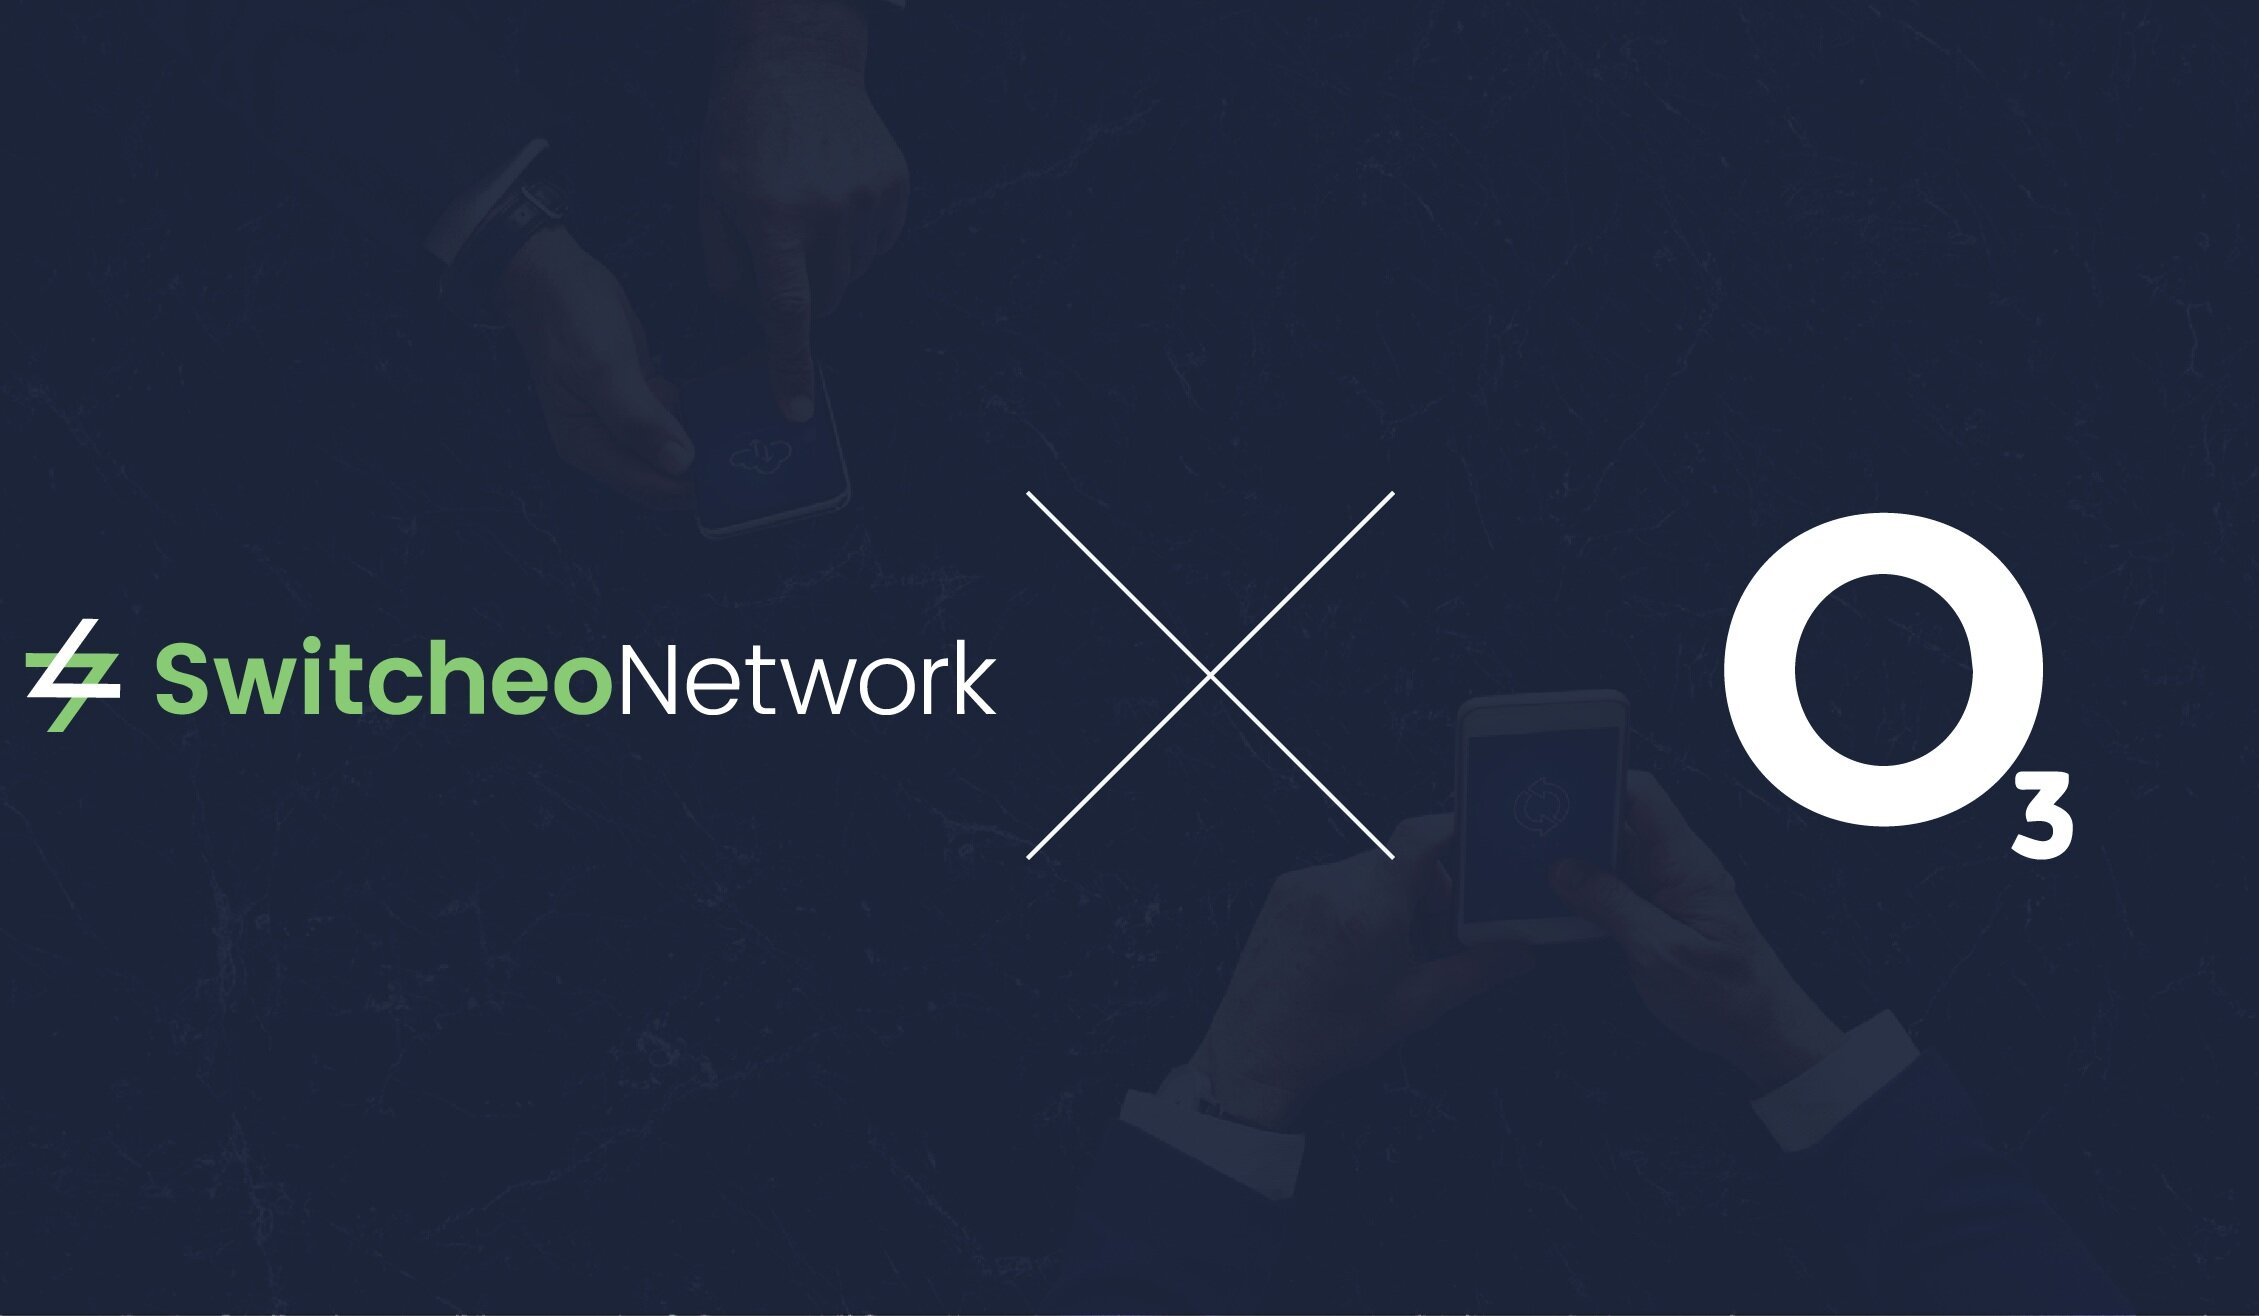 O3 - On 9th July 2018, Switcheo announced a partnership with O3, a cryptocurrency wallet built specifically for the NEO smart economy. This enables O3 users to trade on the Switcheo Exchange directly from their O3 wallet.